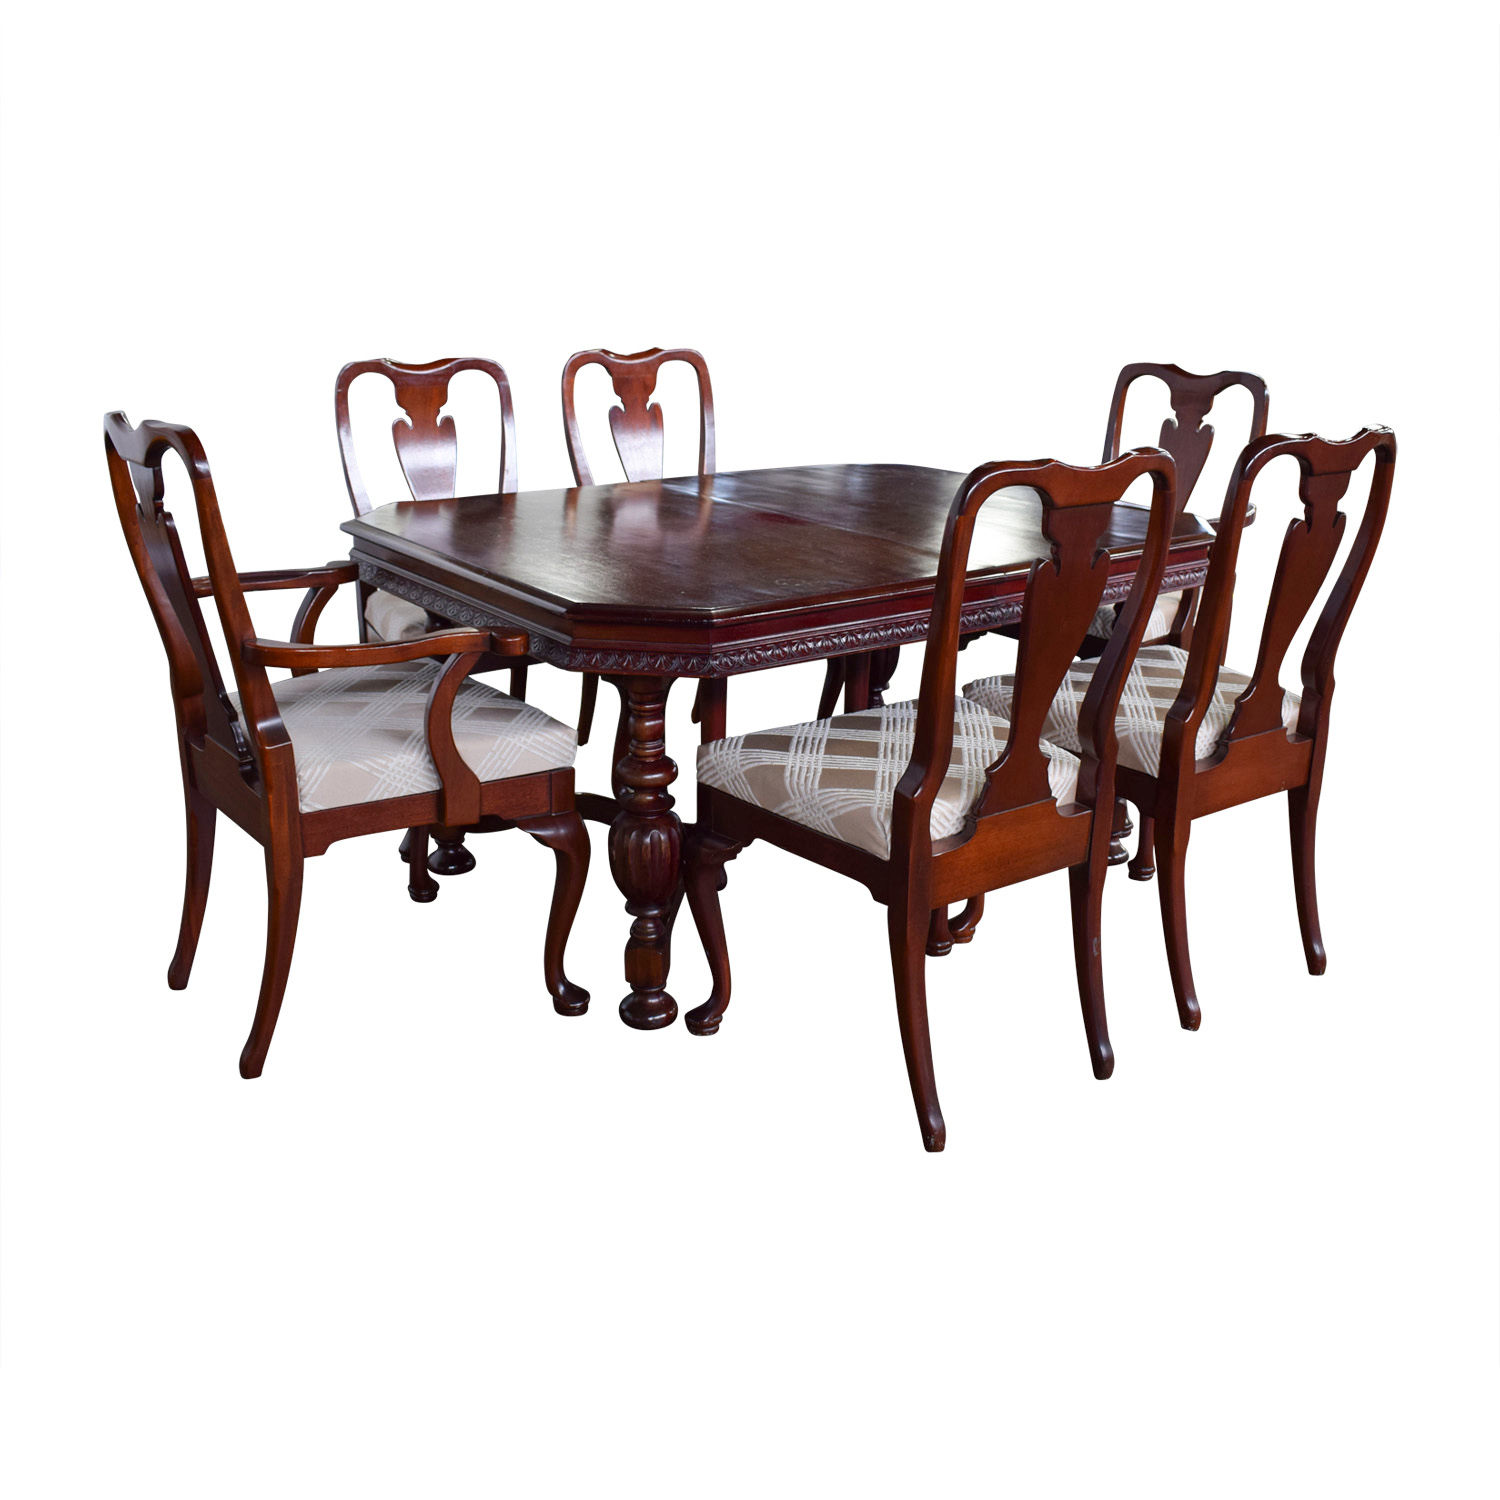 Second Hand Wood Sala Set 90 Off Mahogany Carved Wood Dining Set With Tan And